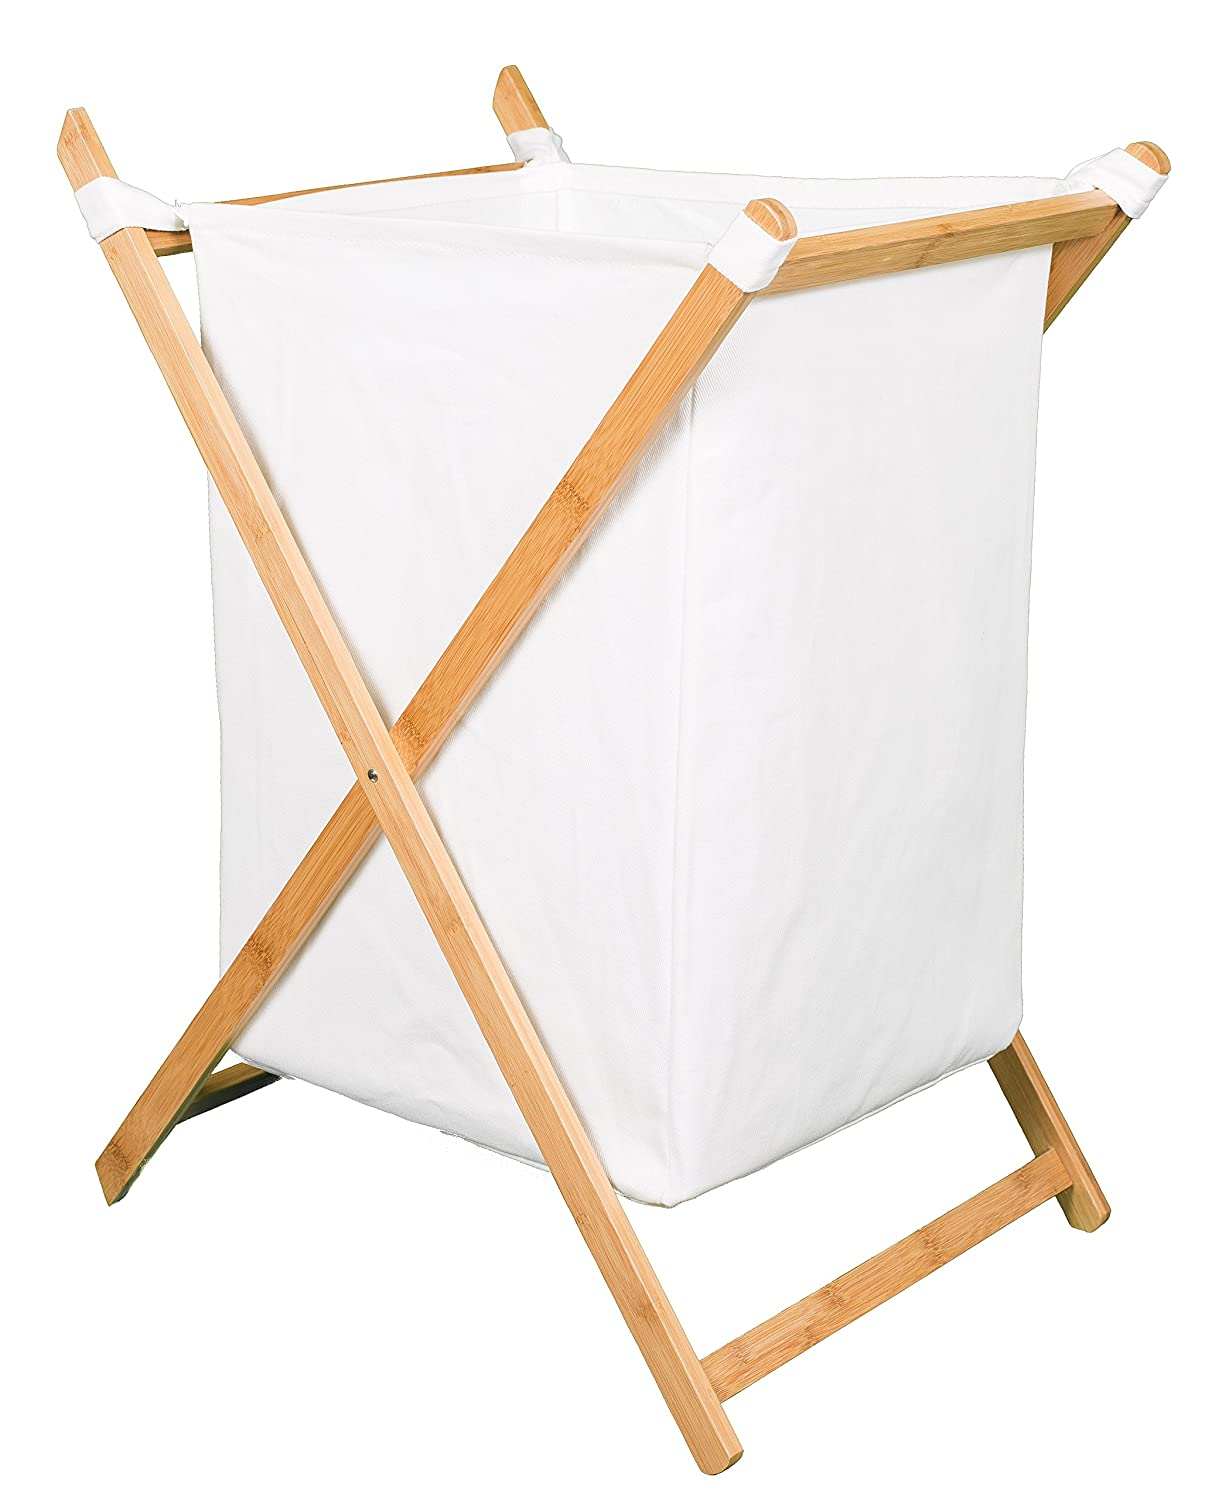 BirdRock Home X Bamboo Hamper | Made of Natural Bamboo | Includes Machine Washable Cotton Canvas Liner | Lightweight for Easy Transportation 6559